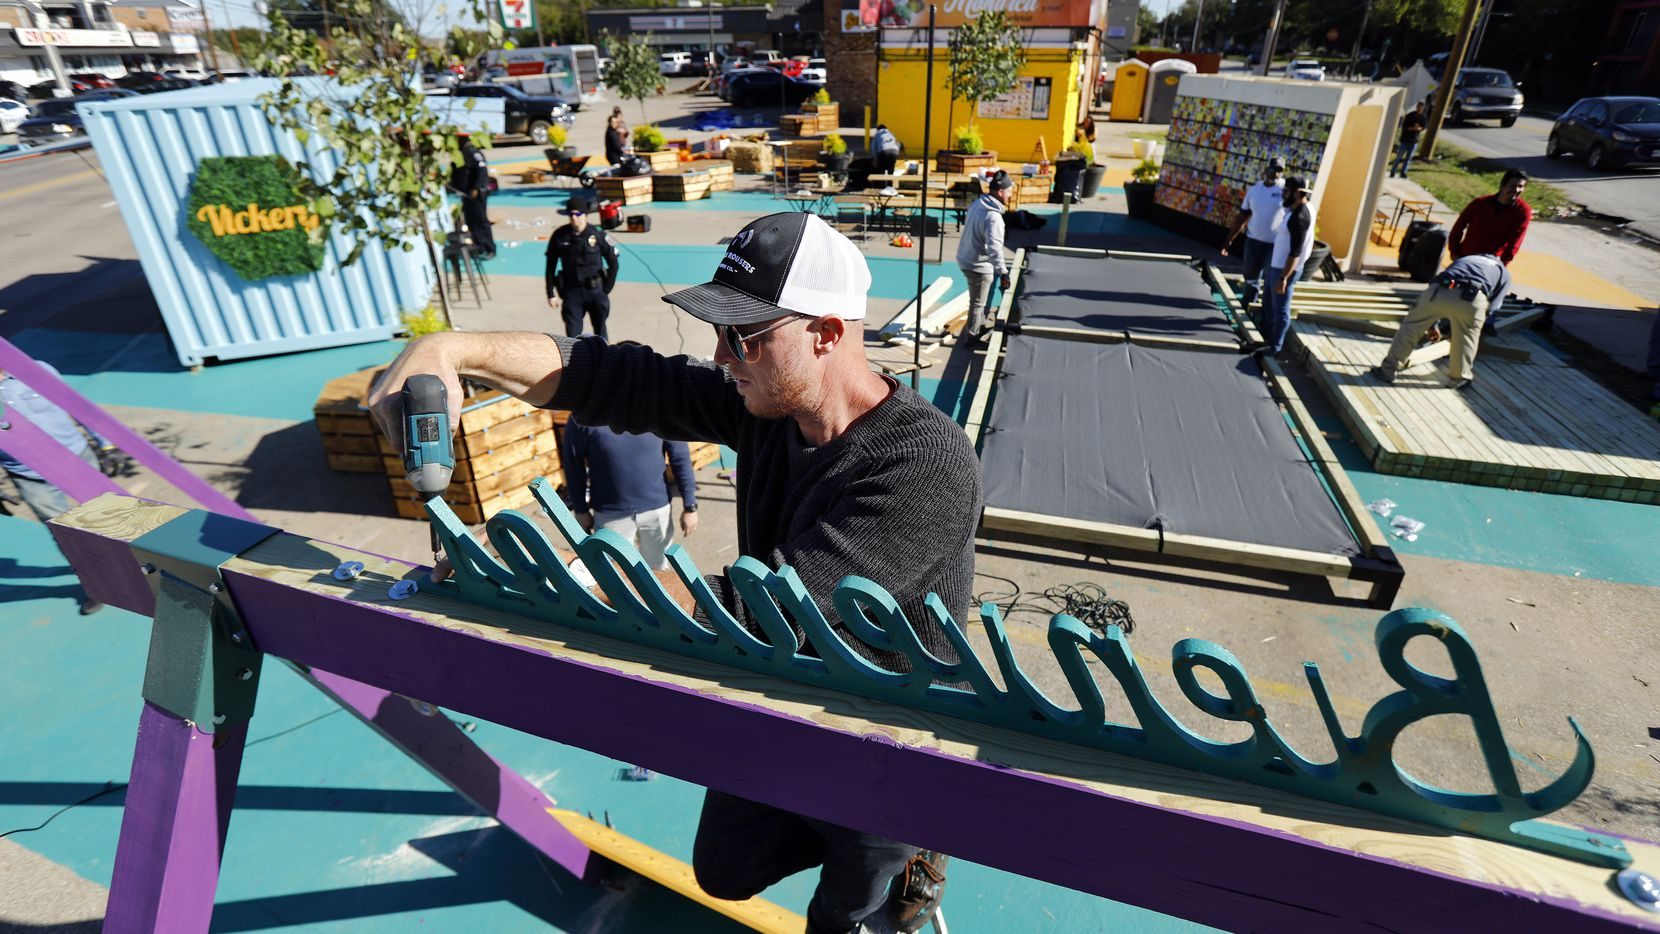 Better Block founding director Jason Roberts installs a Bienvenidos (welcome) sign atop a swing as the team makes improvements to the Five Points street intersection in the Vickery Meadow area of Dallas on Friday.Three swings welcomed kids in Spanish, Arabic and Burmese. Improvements include adding a plaza, potted trees a pop-up container store, stage, swings and colorful walkways to beautify the neighborhood. The goal is to reduce crime through improving the environment.